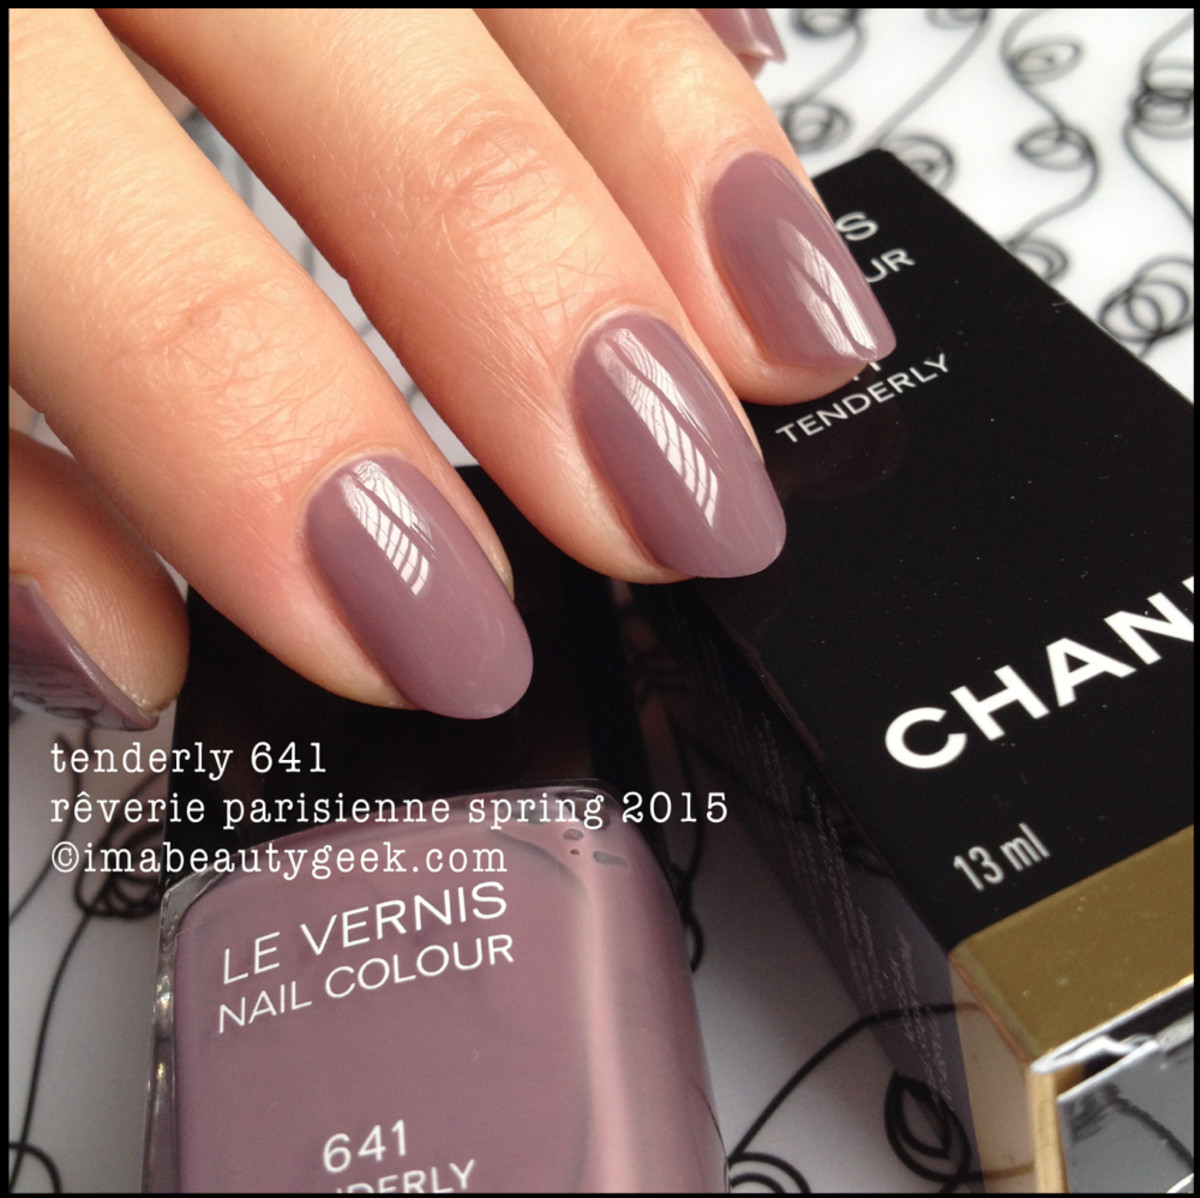 Chanel Tenderly Spring 2015 Reverie Parisienne